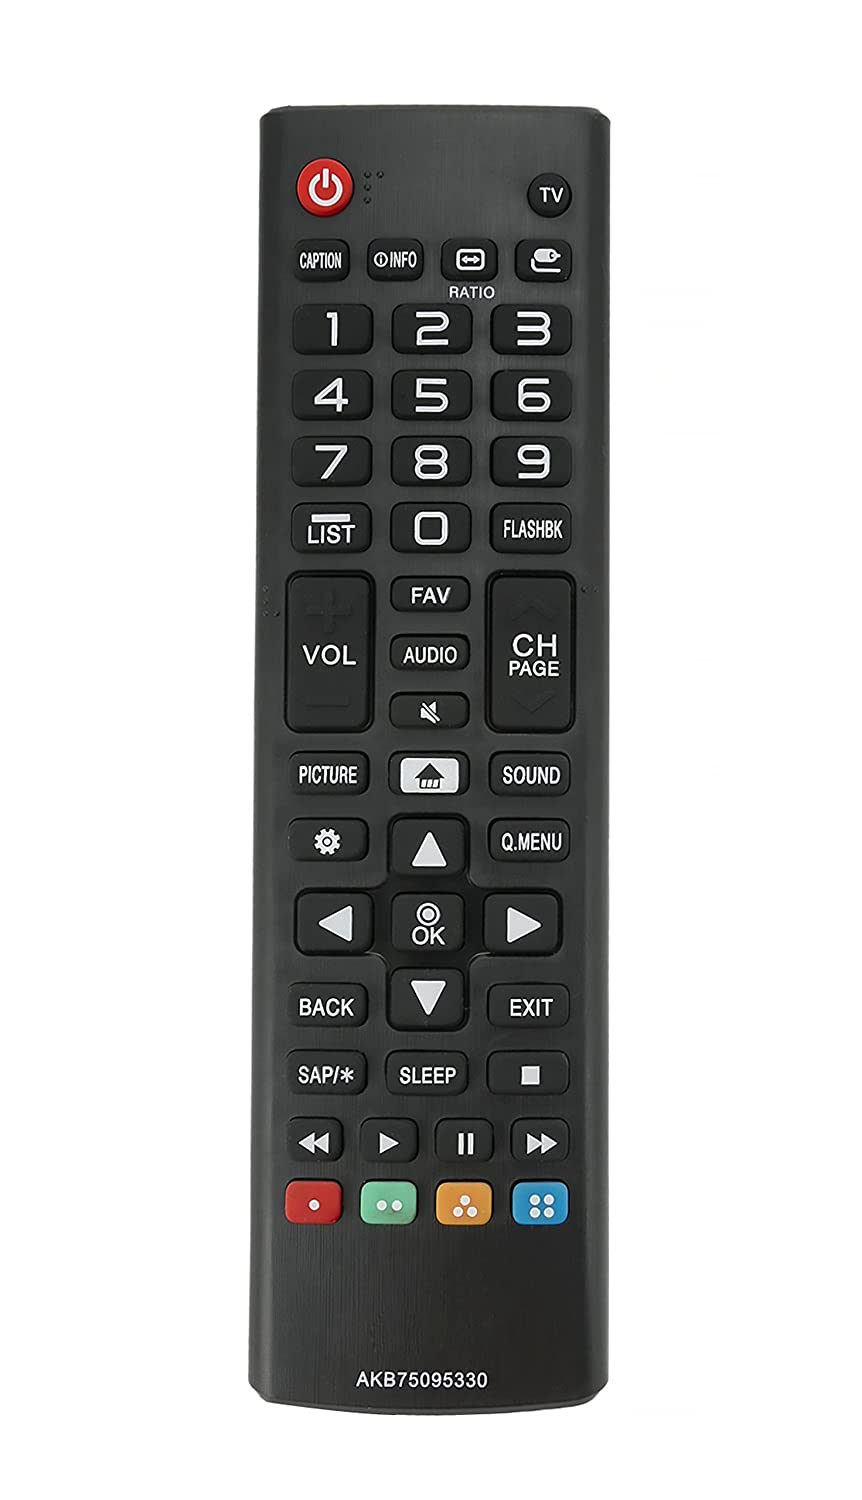 Vinabty New AKB75095330 Replace Remote Control fit for LG 28MT42DF 28LJ400B 43LJ5000 43LJ500M 32LJ500B 28LJ400B-PU 32LJ500UB 32LJ500-UBLED 28LJ430B LCD TV VINABTY factory